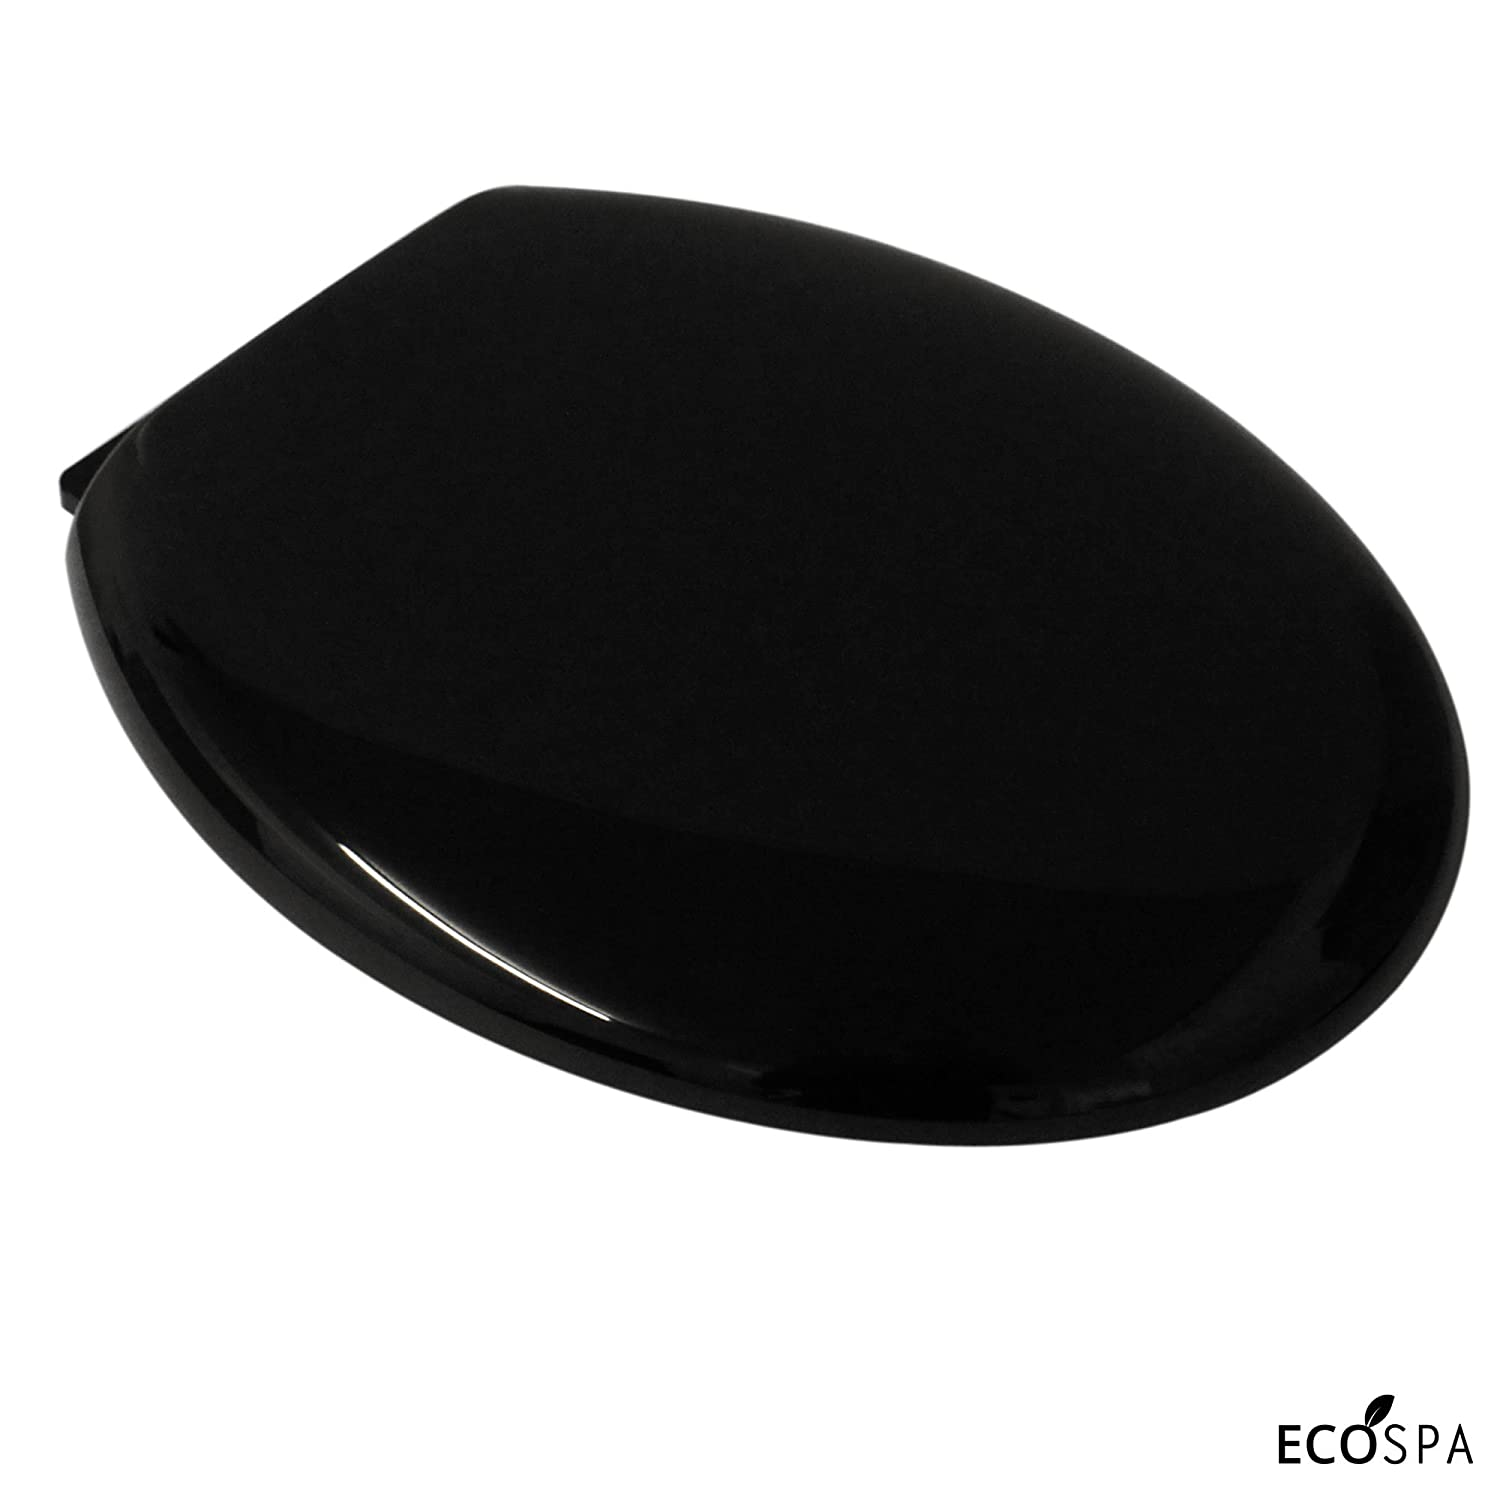 ECOSPA Black Oval Toilet Seat with a Slow Closing Anti Slam Lid & Seat. Easy to Clean and Hygienic with adjustable Top Fixing Hinges, Lightweight and Sturdy.